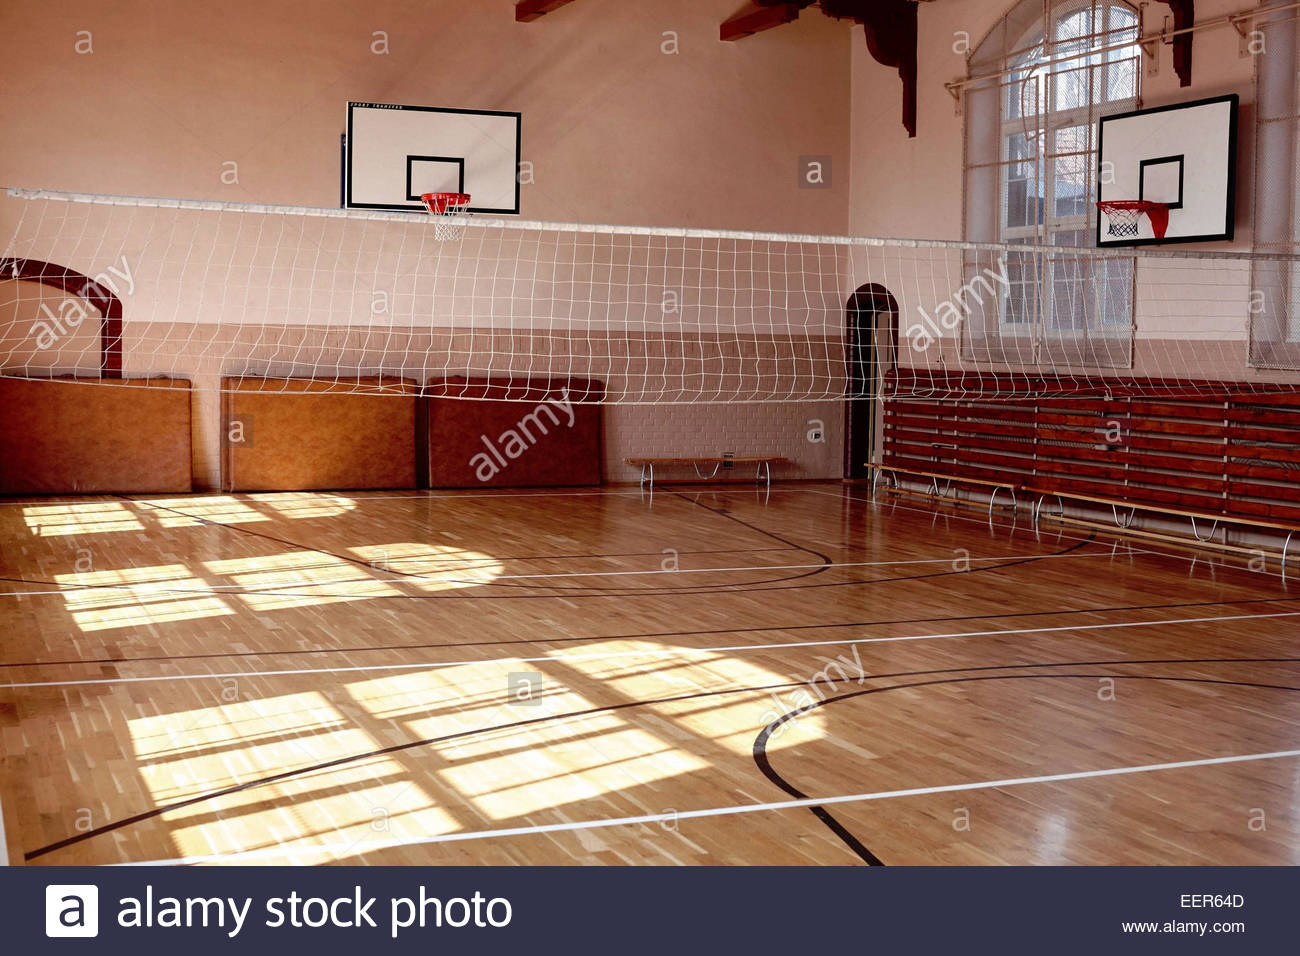 old fashioned school gym in wroclaw poland stock photo 77956381 alamy. Black Bedroom Furniture Sets. Home Design Ideas